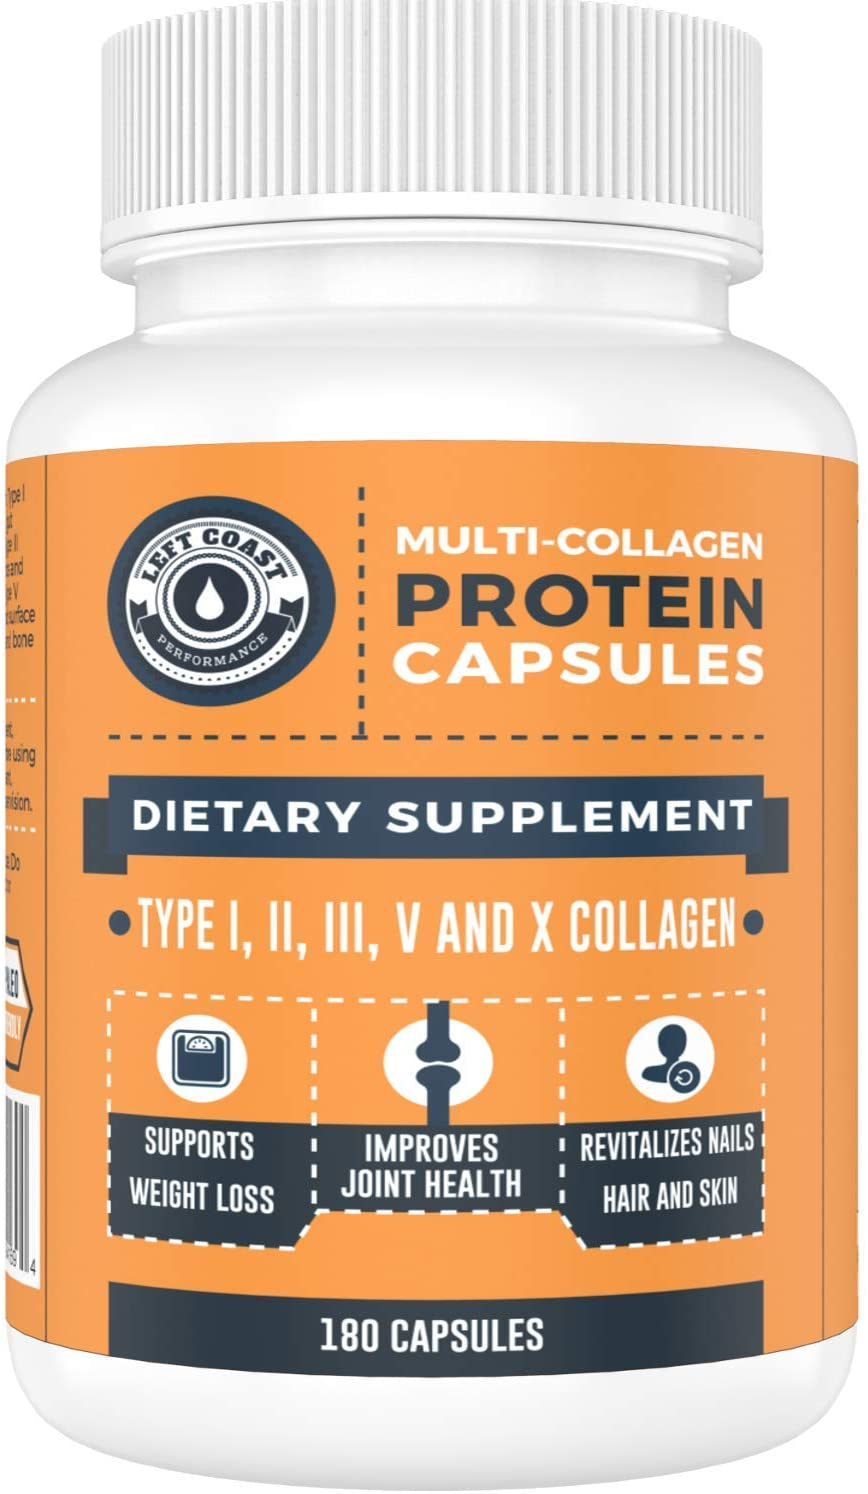 Multi Collagen Caps (Collagen Capsules 1 2 3 5 10) - 180 Count Collagen Peptide Pills. Grass Fed Bovine, Chicken & Eggshell Collagen Capsules Protein Supplement, by Left Coast Performance